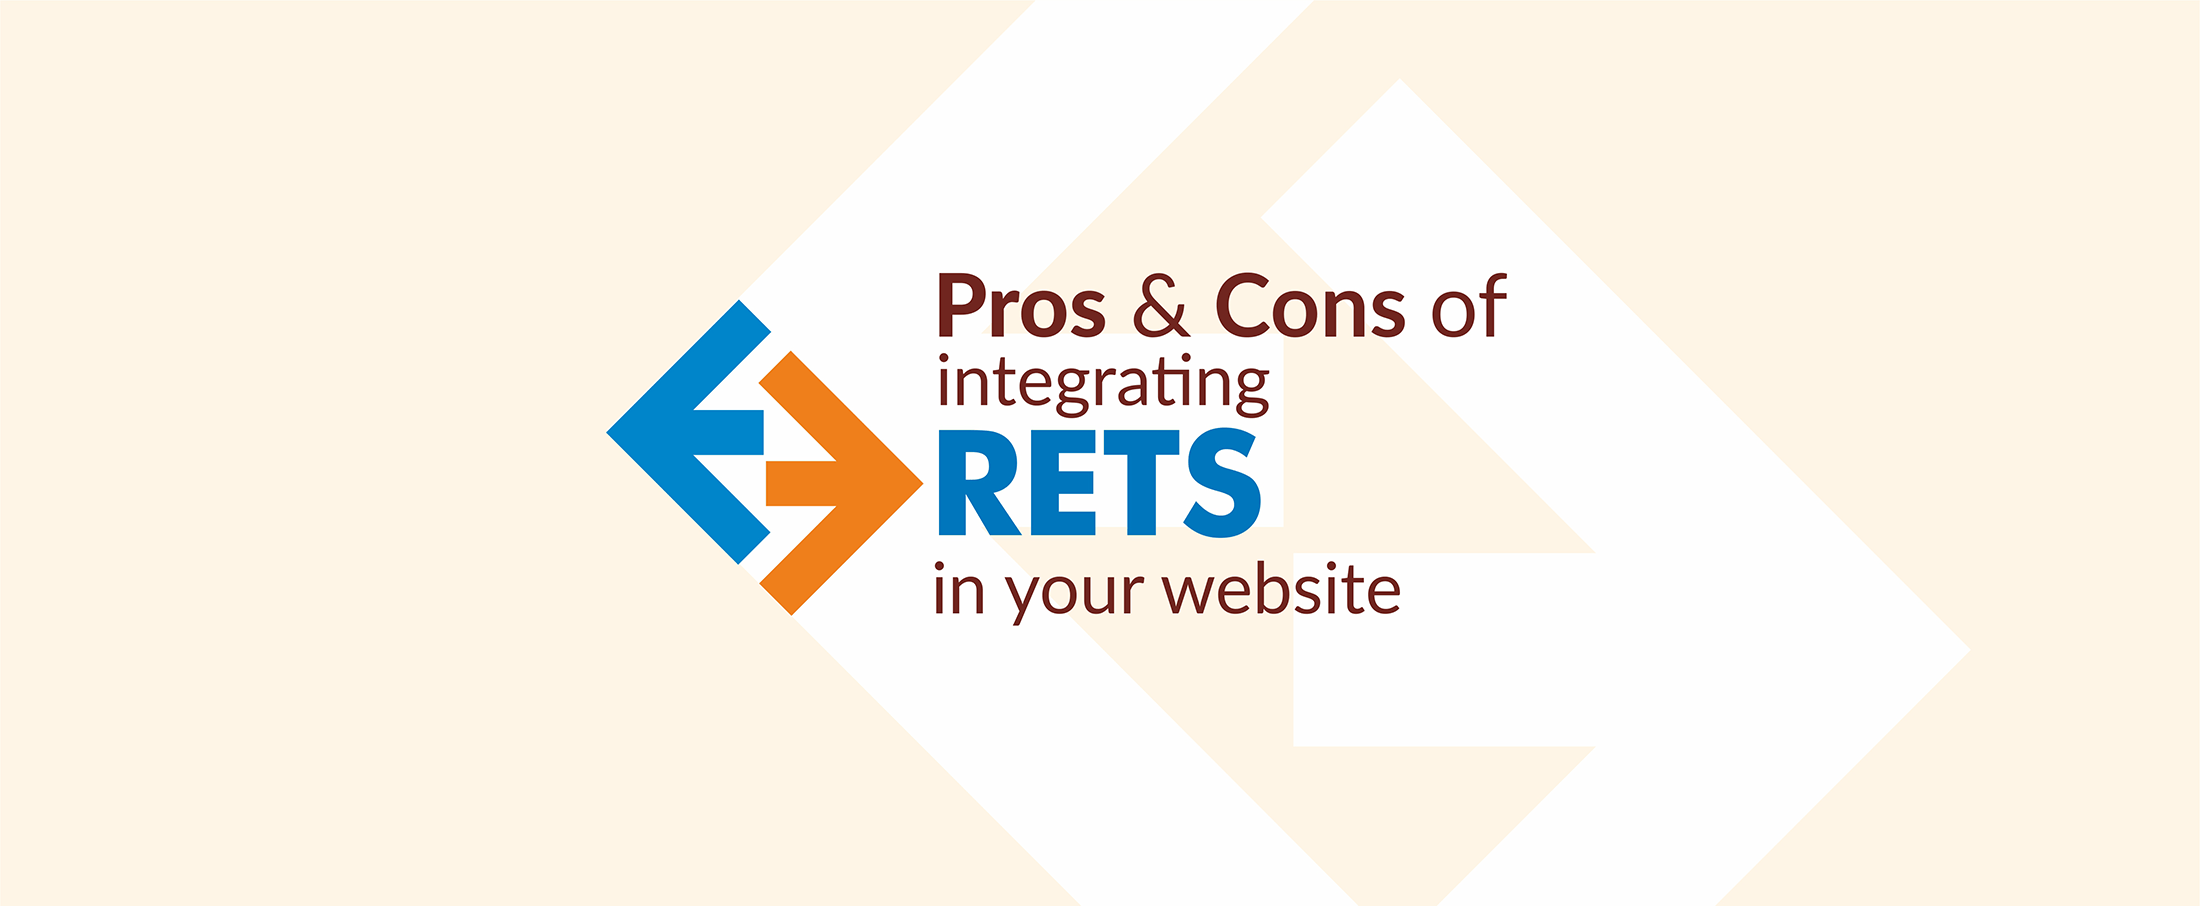 Pros & Cons of integrating RETS in your website